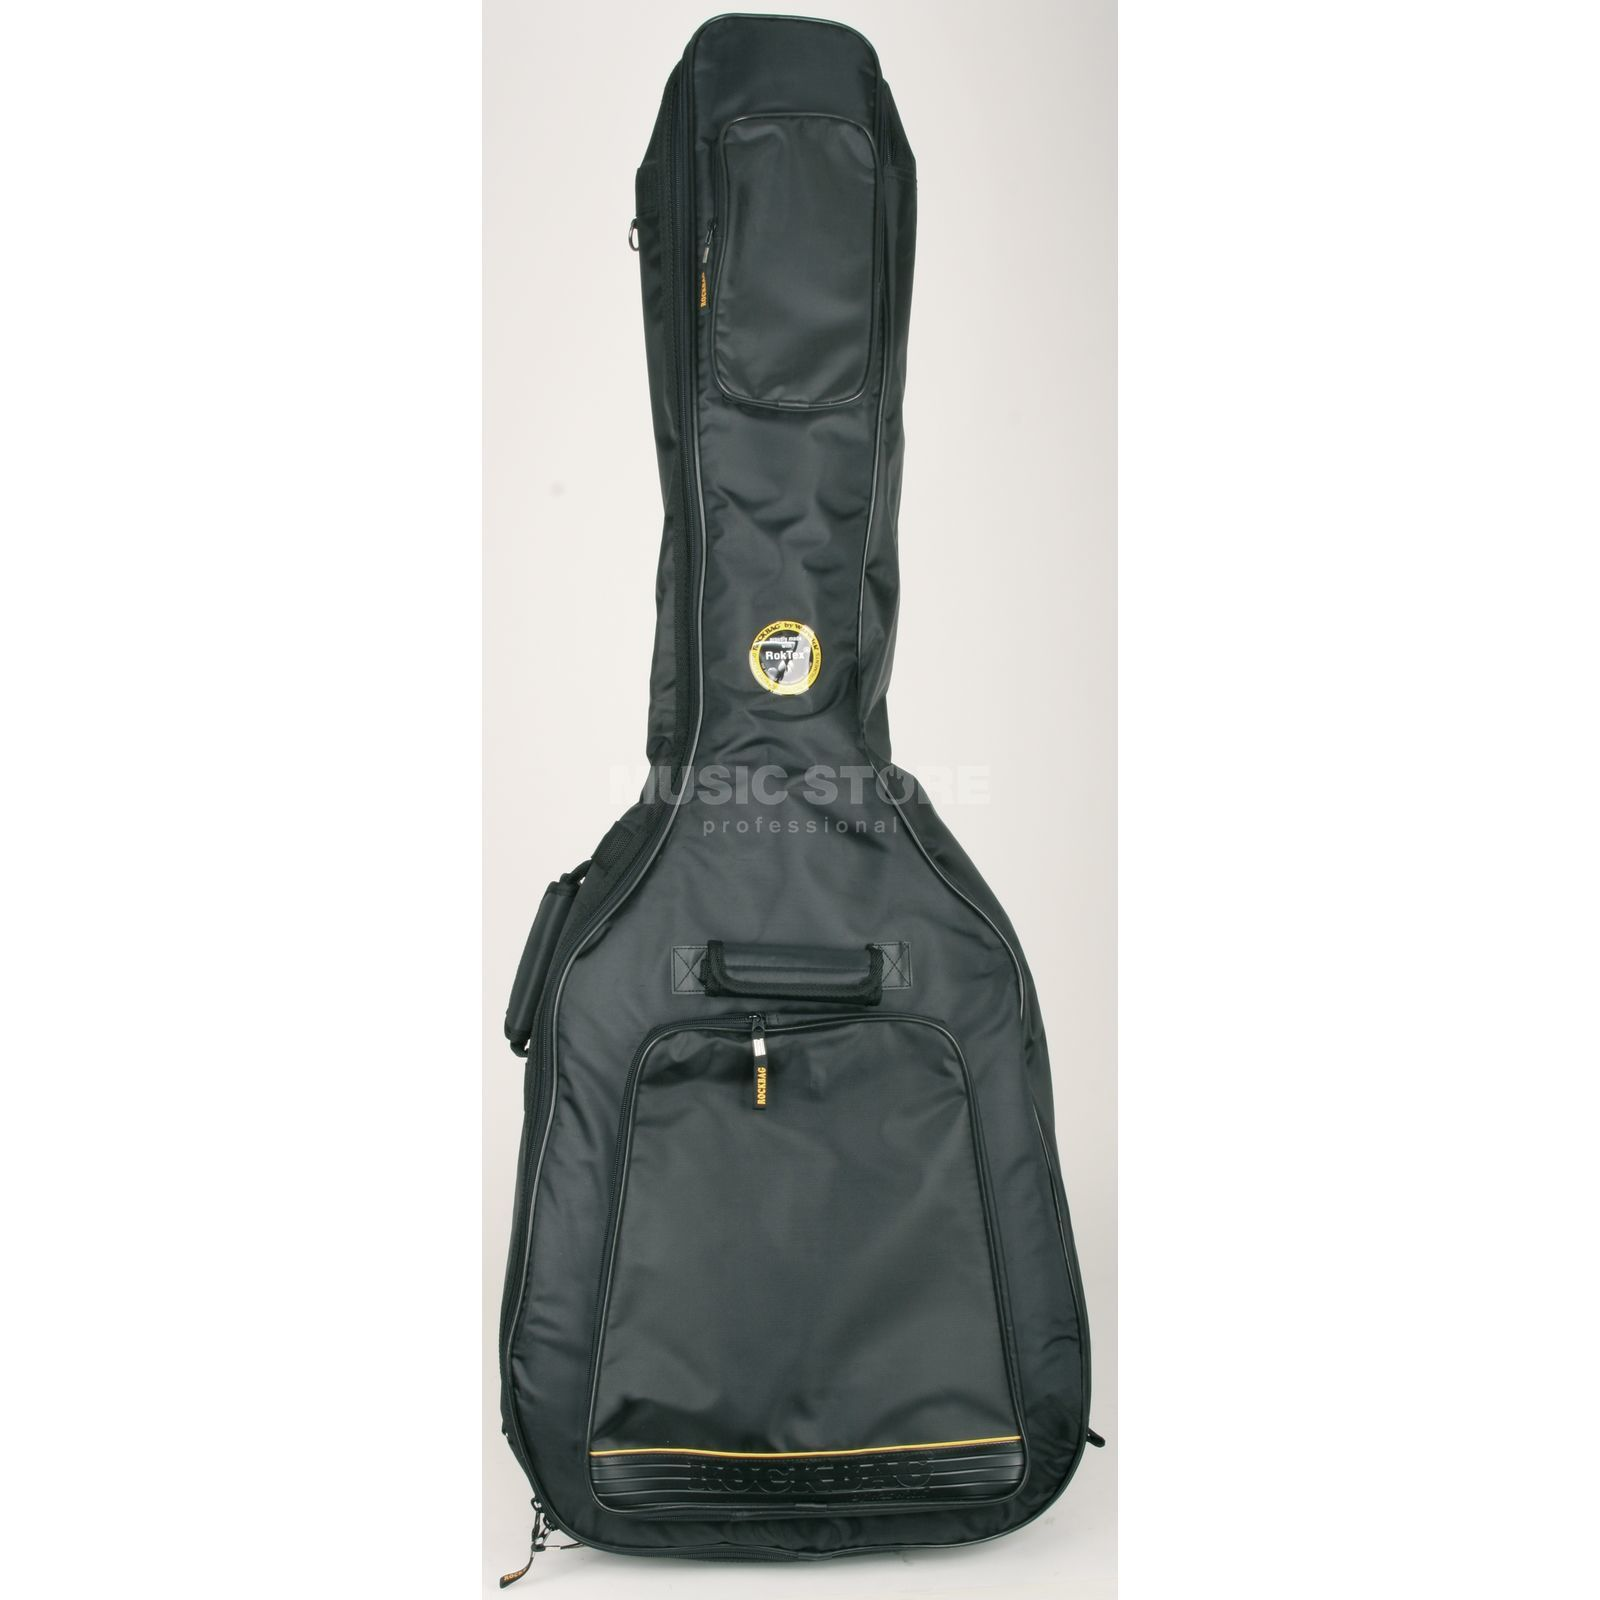 Rockbag RB 20510 Acoustic bas Bag Deluxe Line Productafbeelding